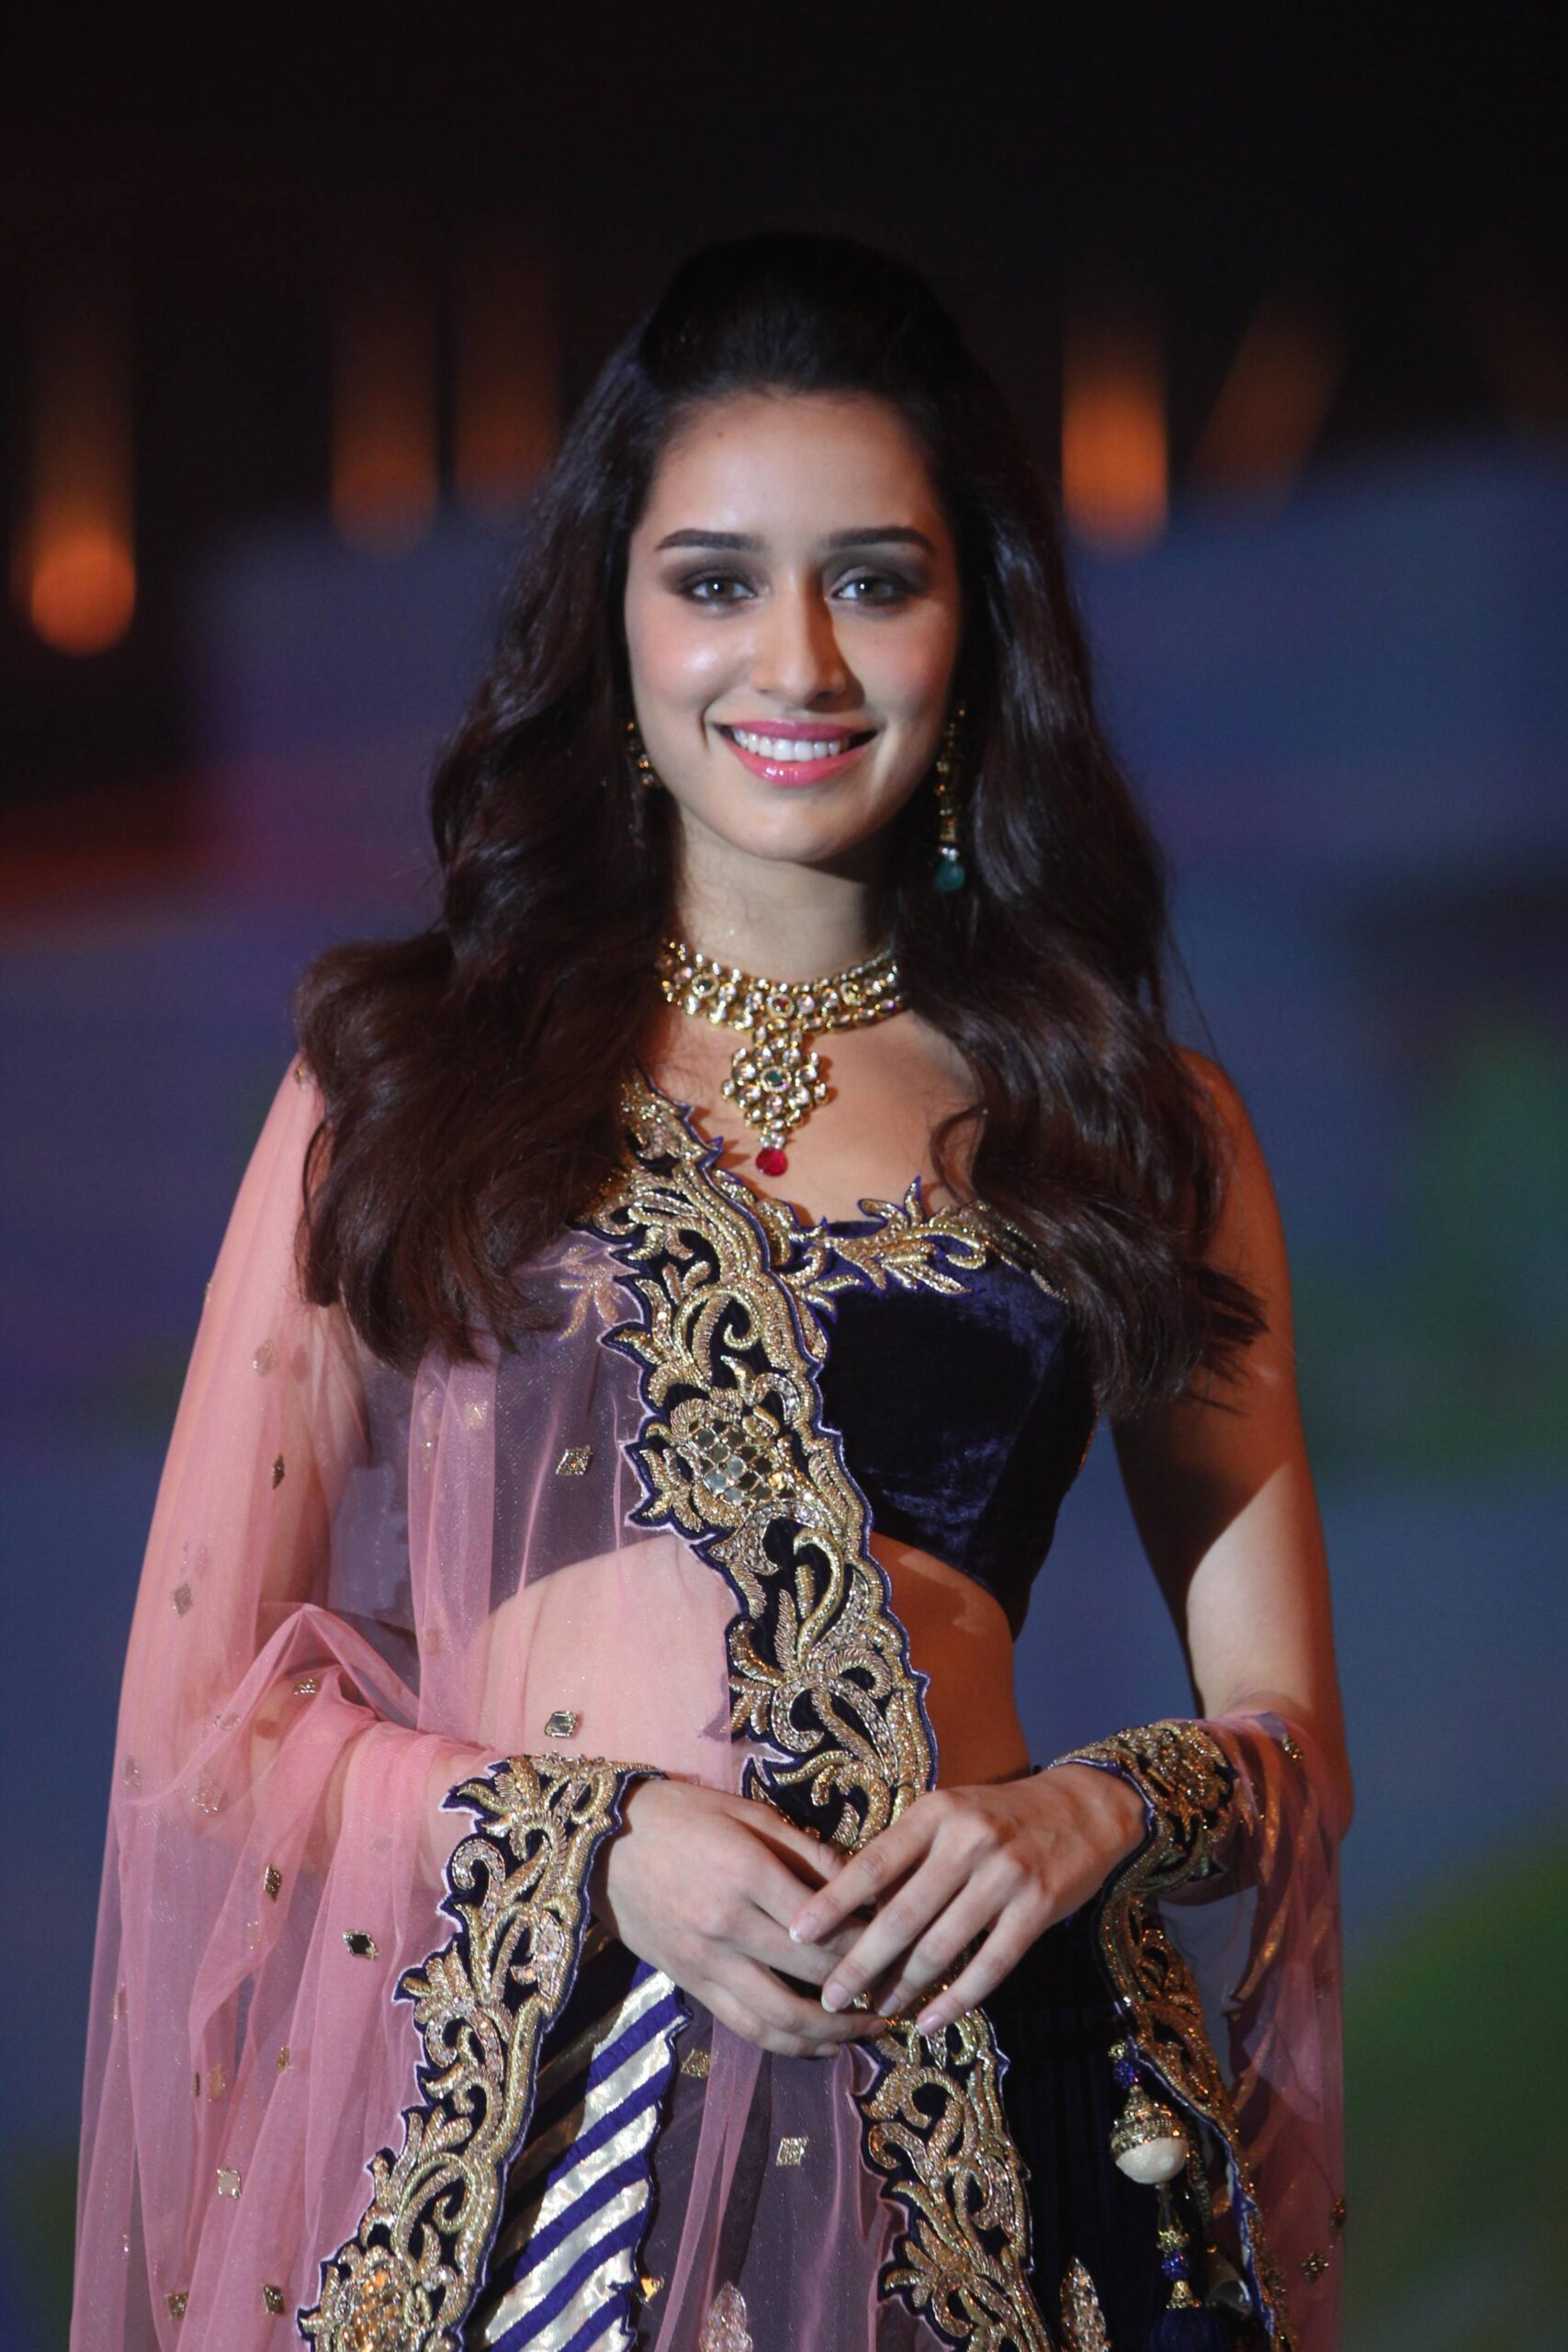 shraddha_kapoor_wallpaper_97338057